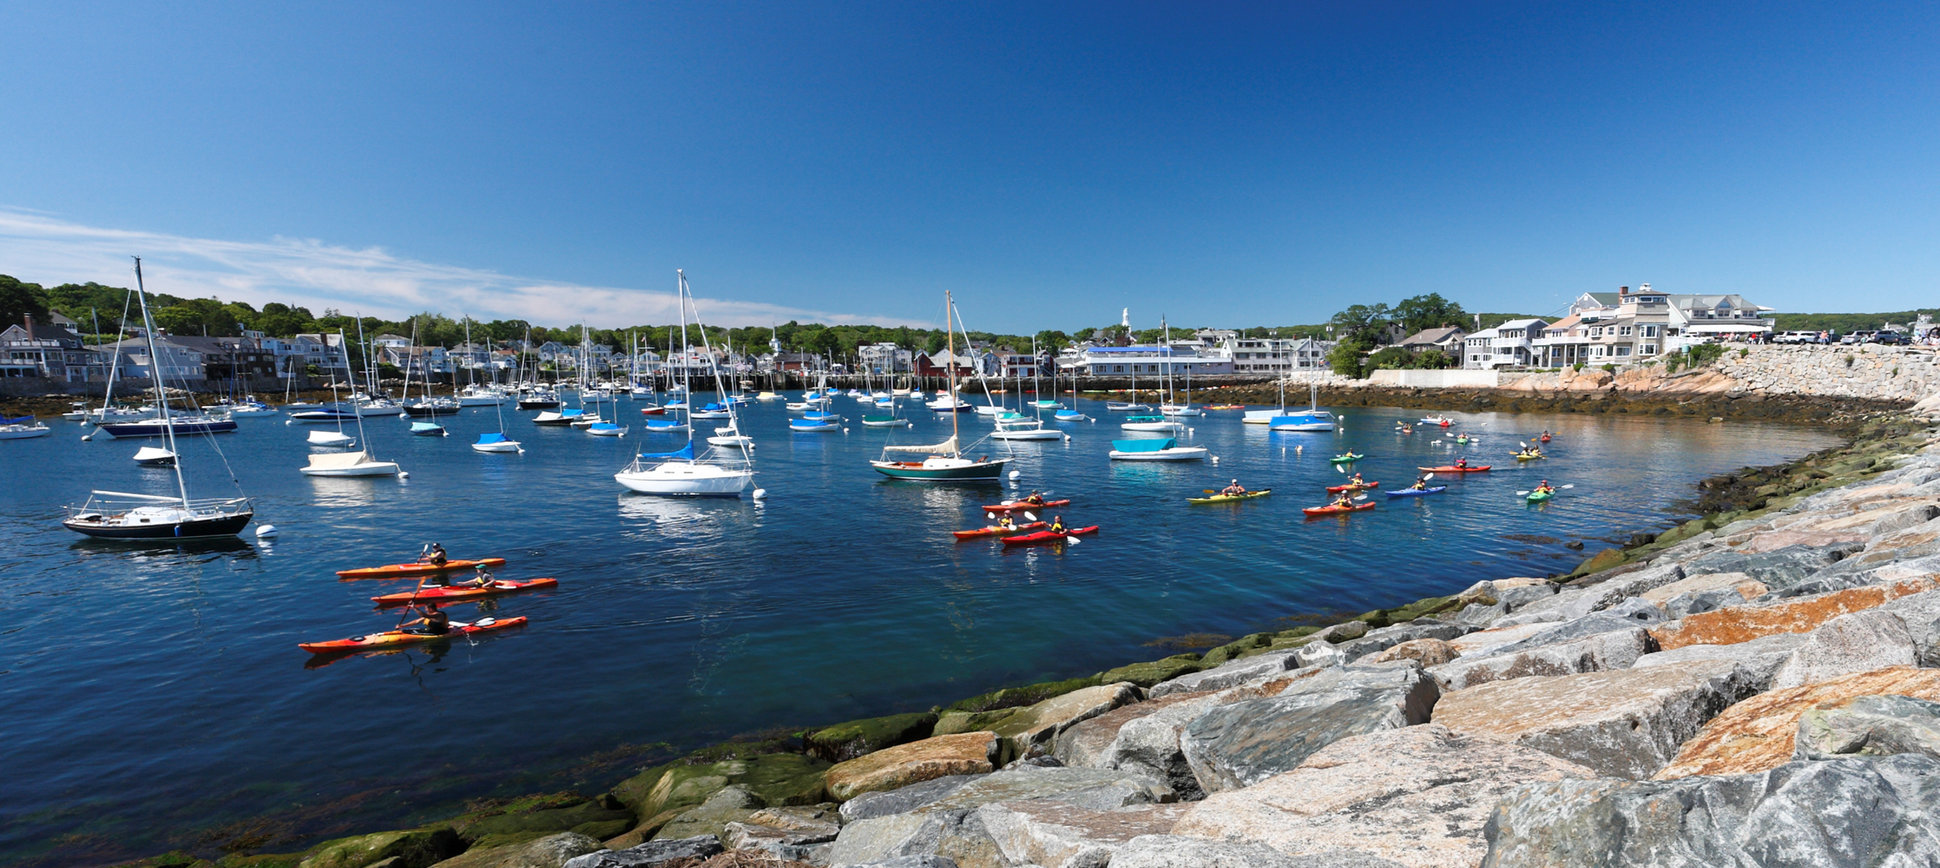 The Best Vacation Spots You Can Drive to From Boston This Weekend